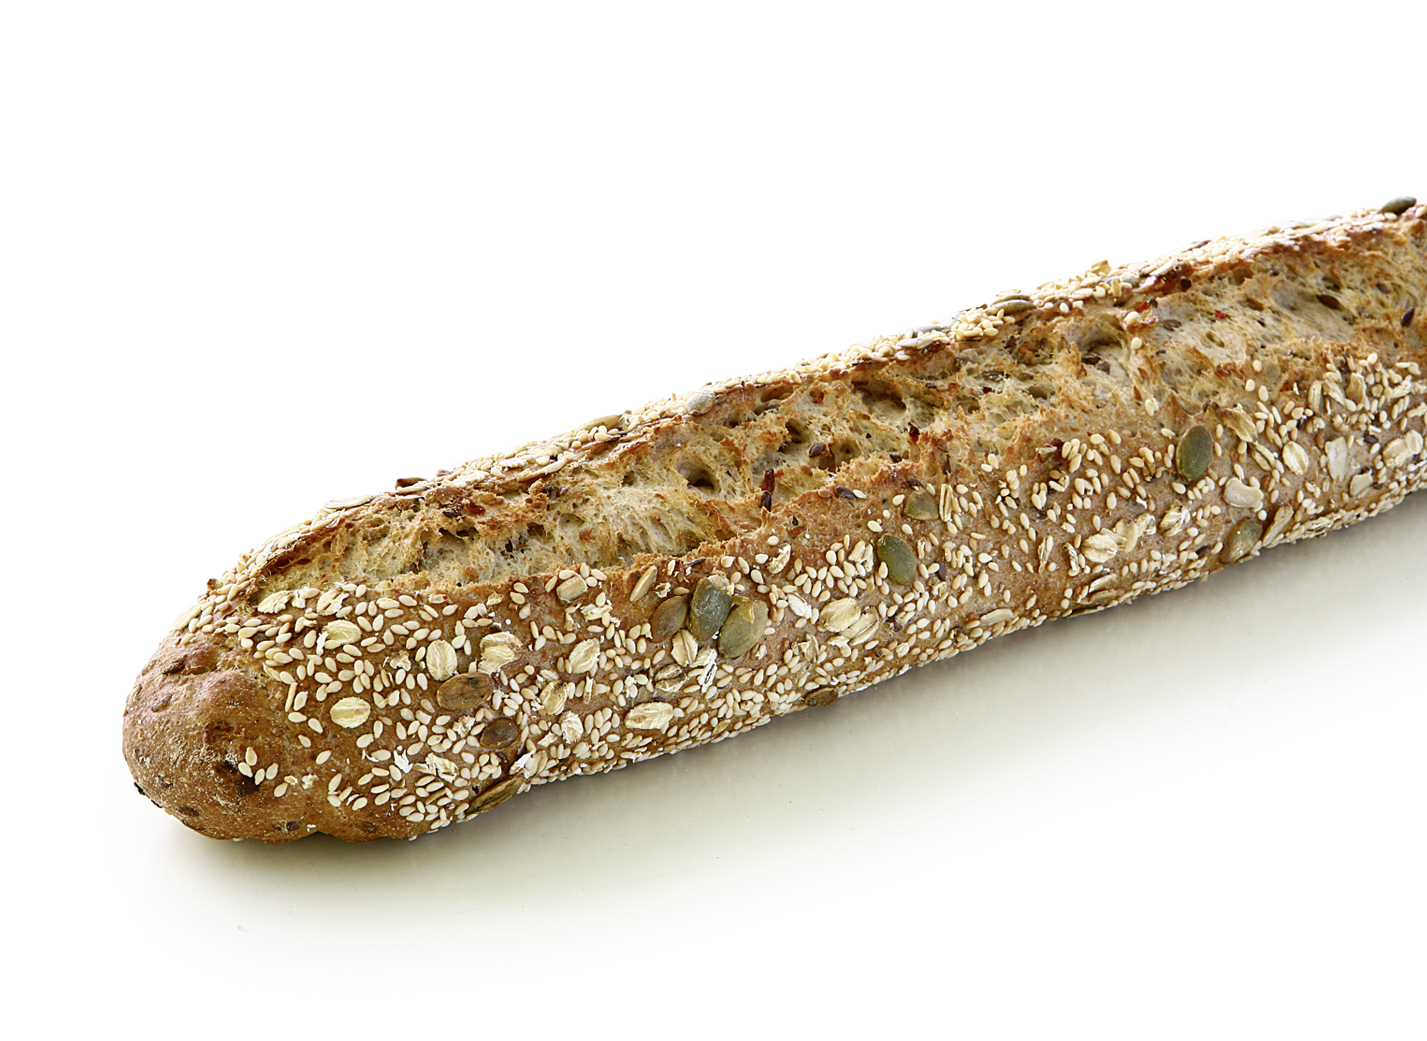 Baguette with Ancient Grains, Seeds and Carrots - Wheat baguette with perennial rye, emmer flour, linseed, sesame, carrots, pumpkin seeds, sea salt and honey/ length: approx. 38 cm